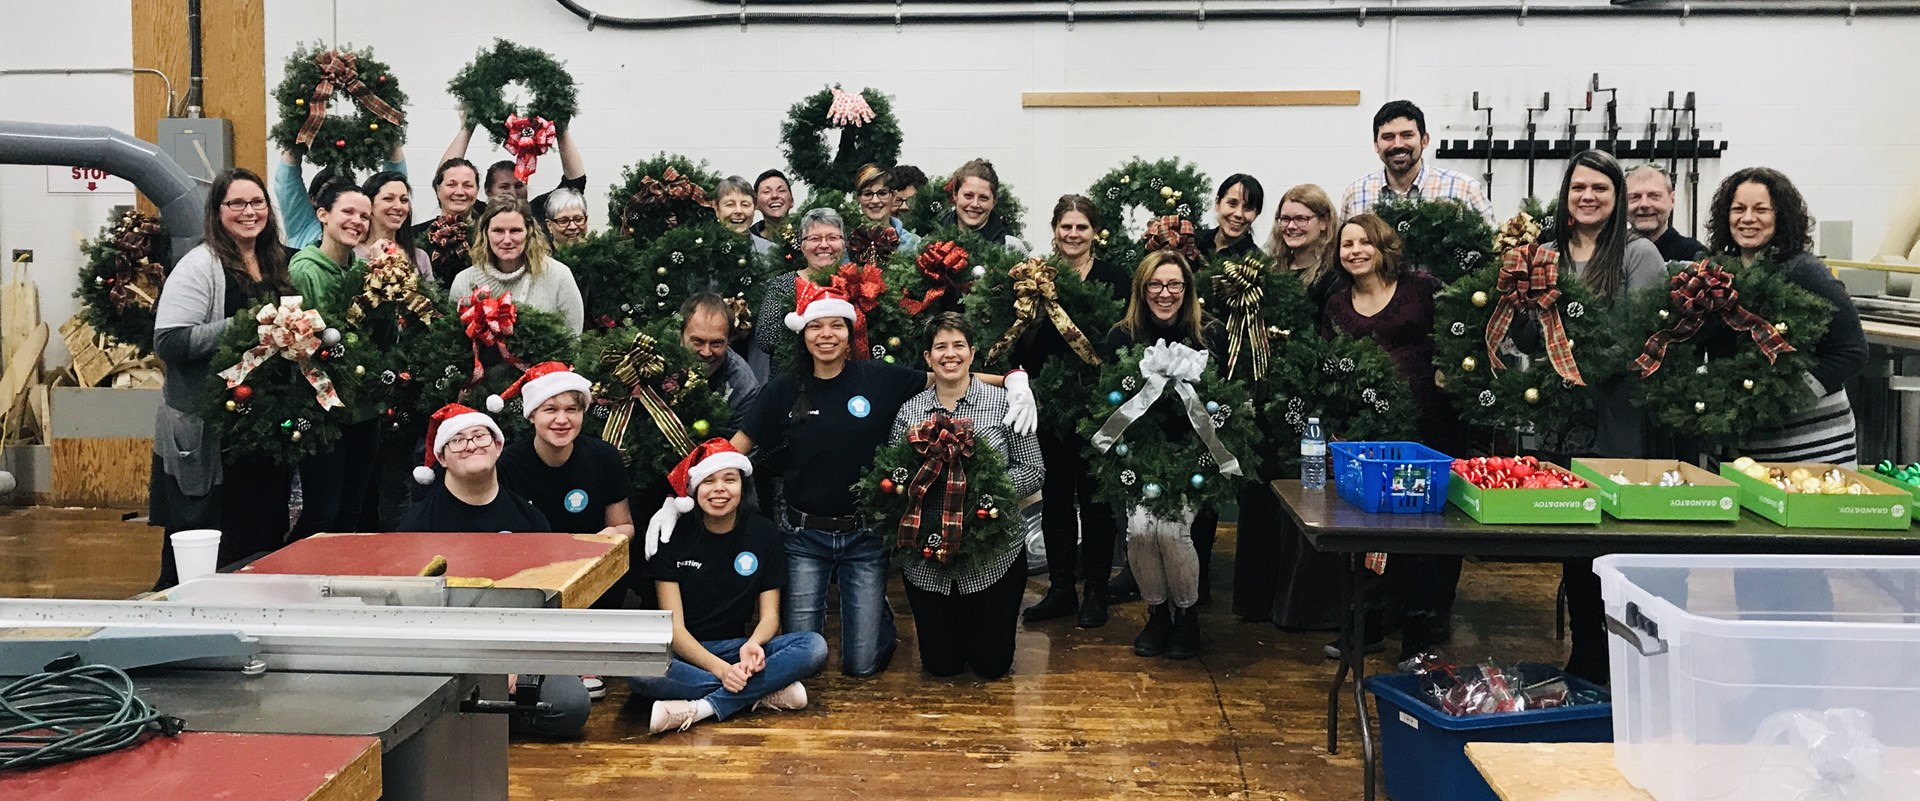 Holiday Wreath Making Fundraiser.jpg